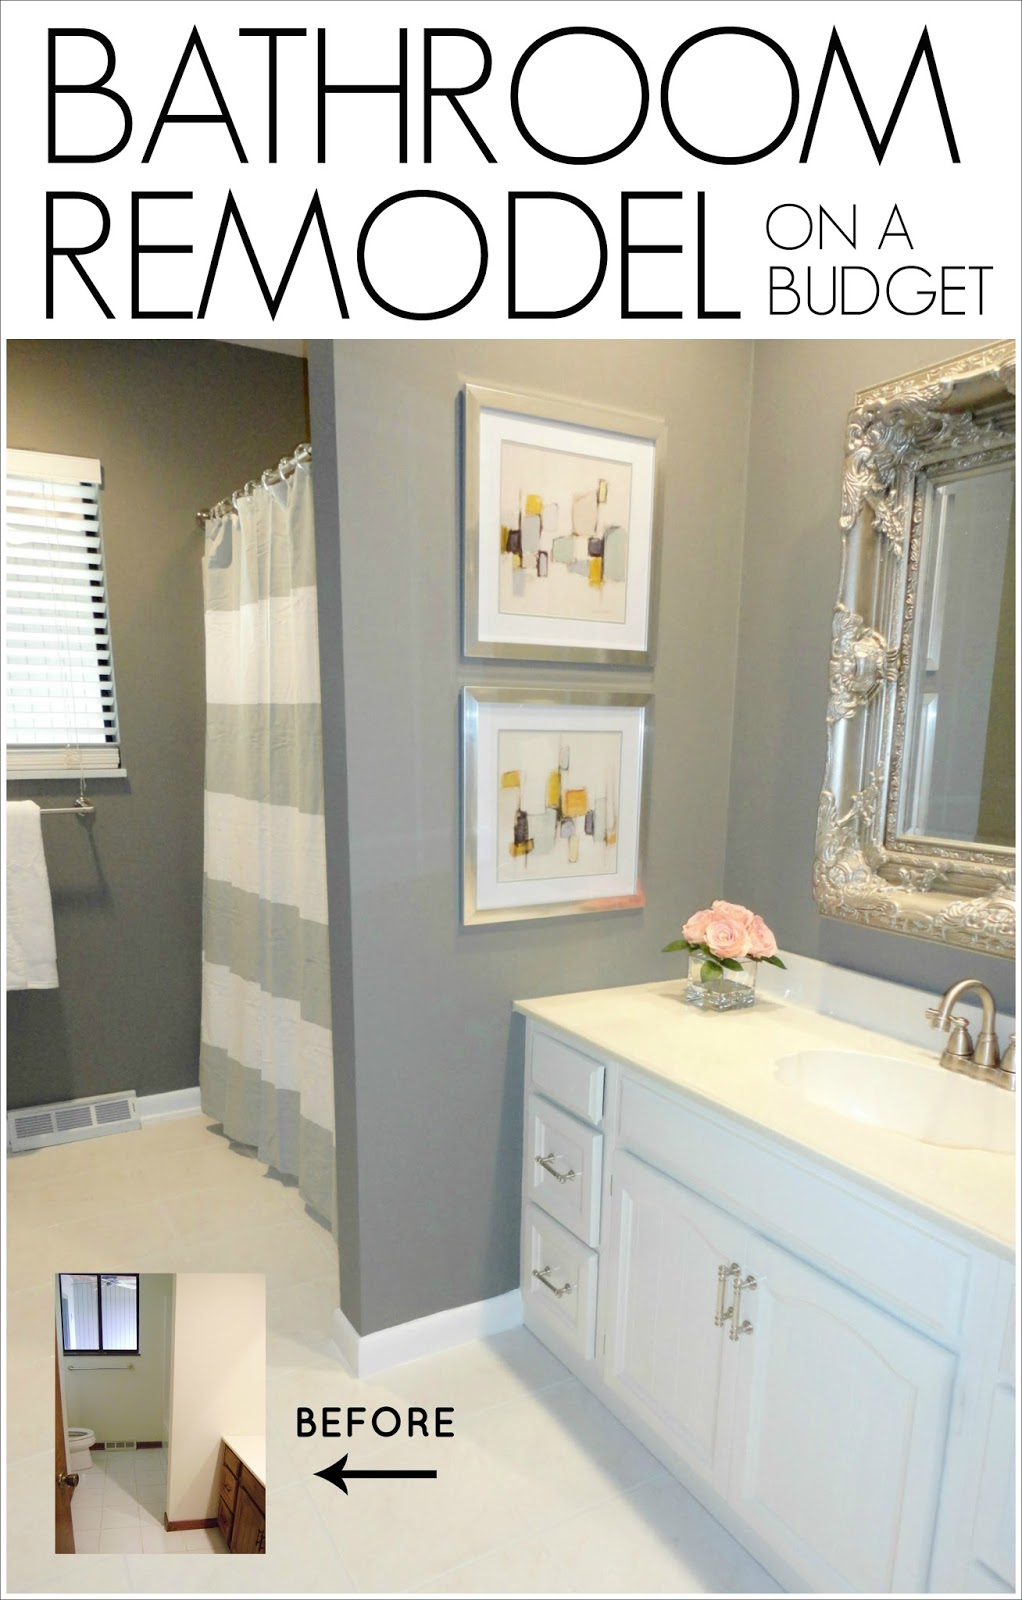 Remodel Bathroom Blog livelovediy: diy bathroom remodel on a budget